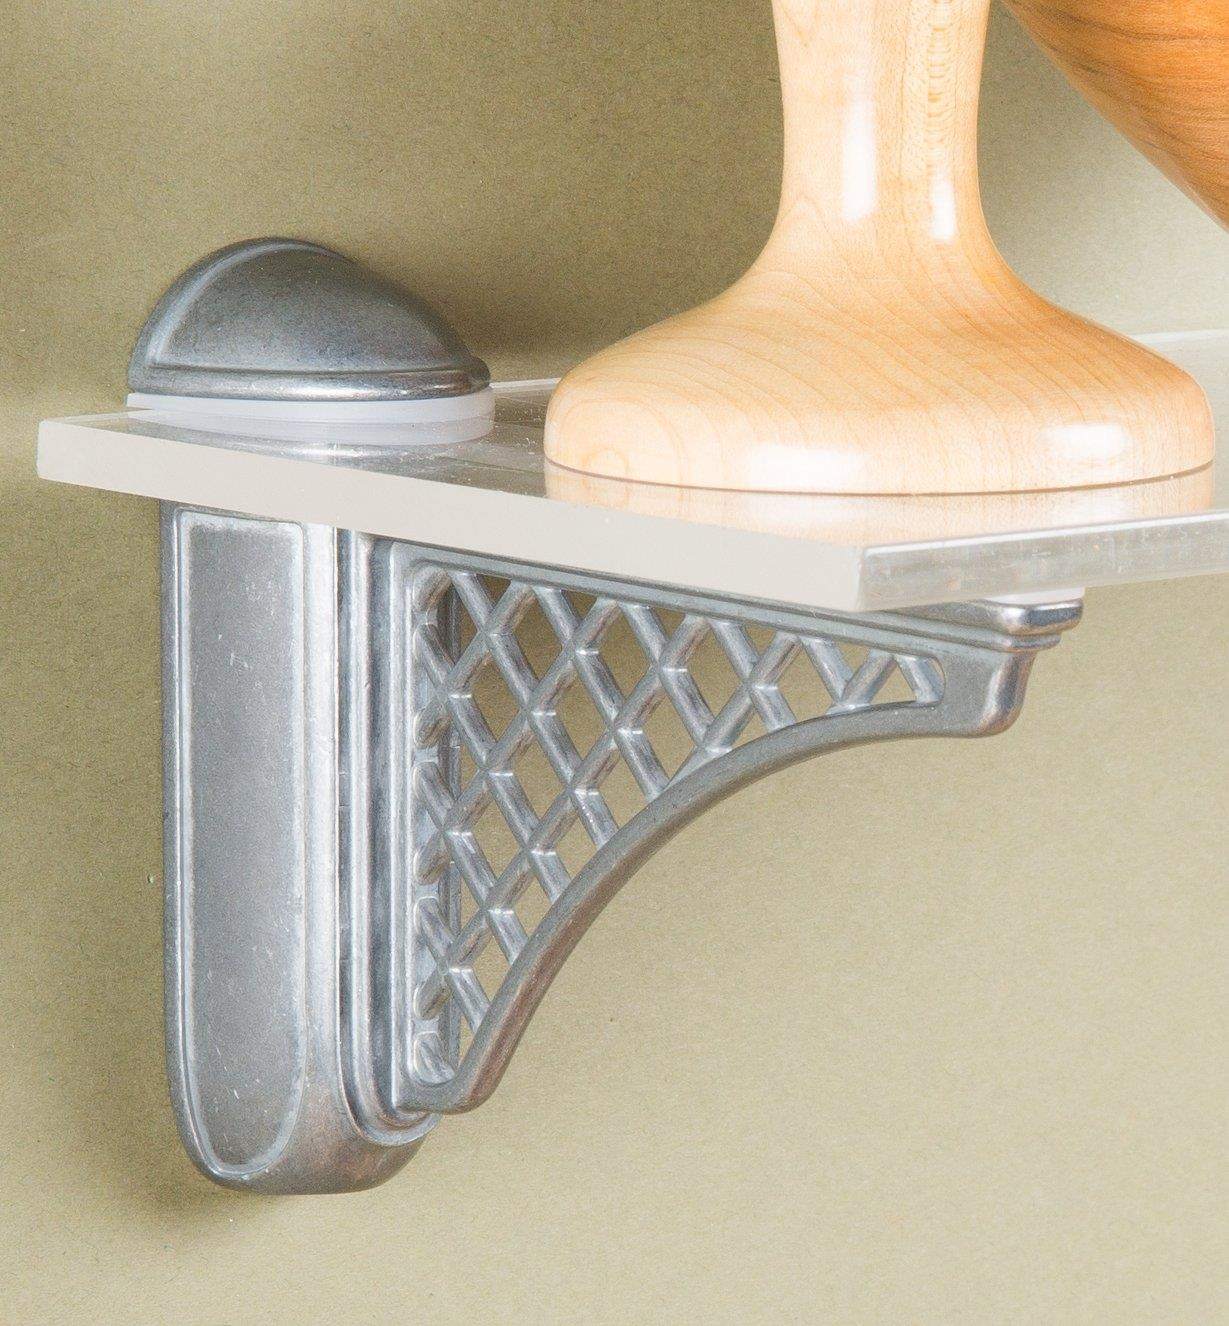 01A1851 - Colonial Tumbled Nickel Adjustable Bracket, each